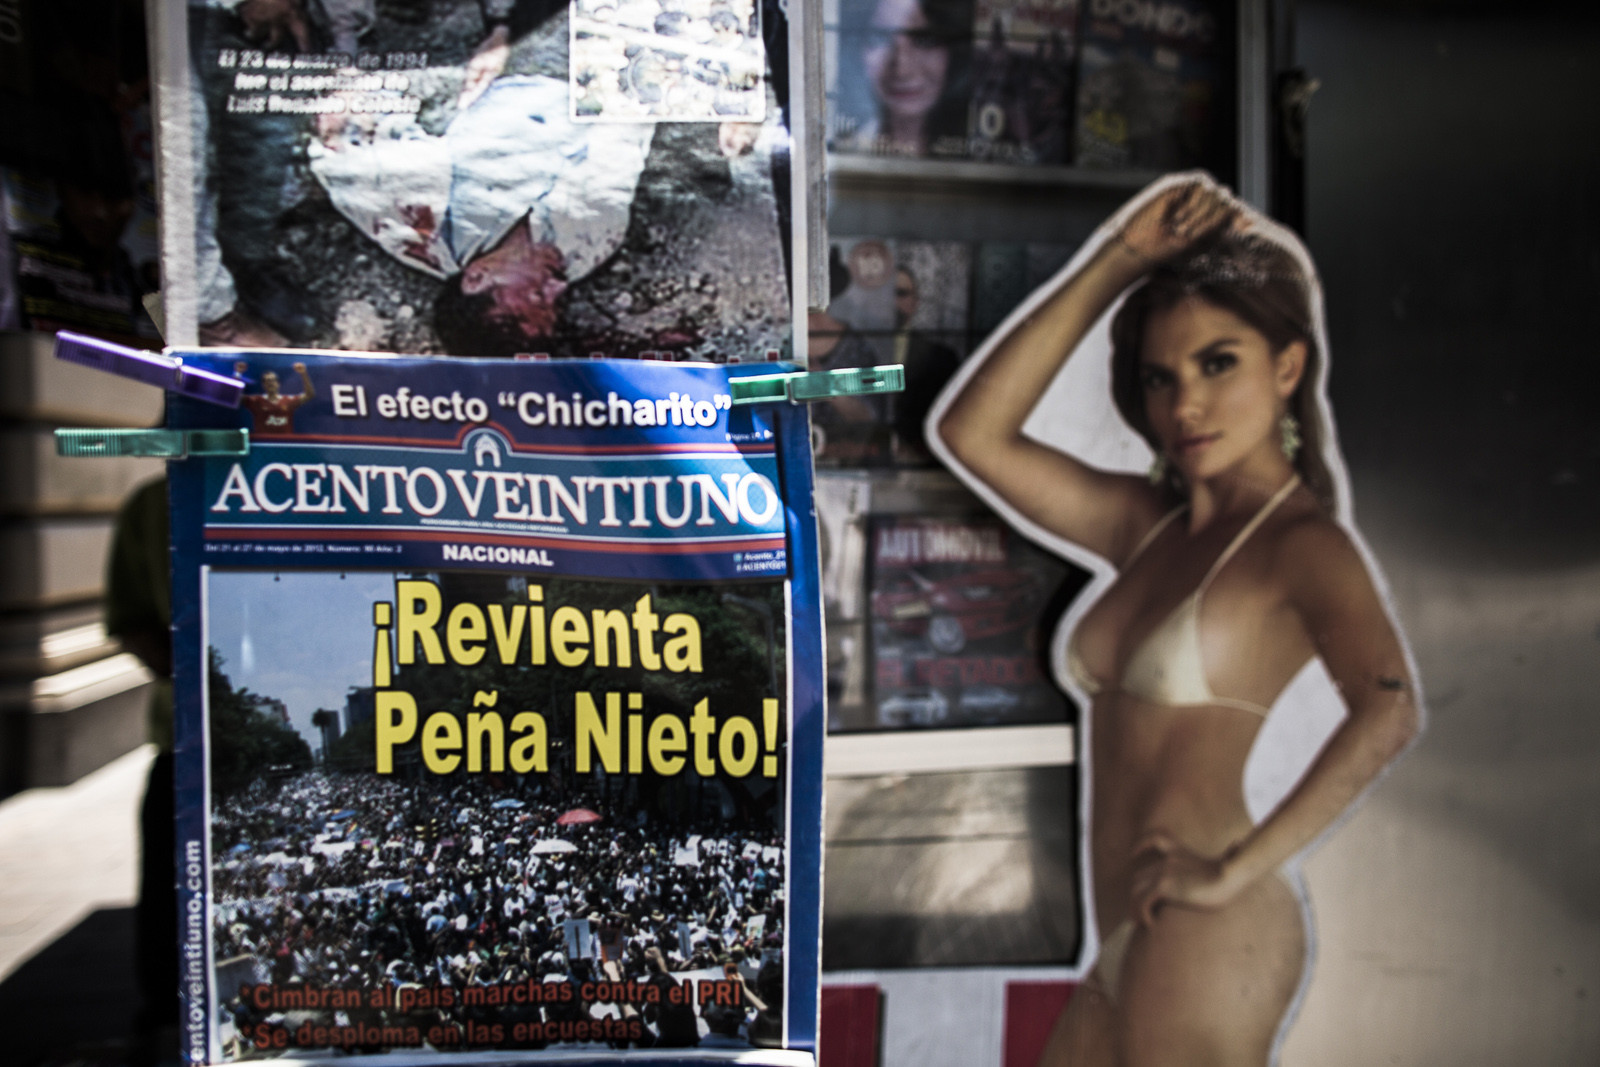 A newspaper showing one of the many daily-dead is sold next to one of the few magazines covering the movement at a newsstand in Mexico City.